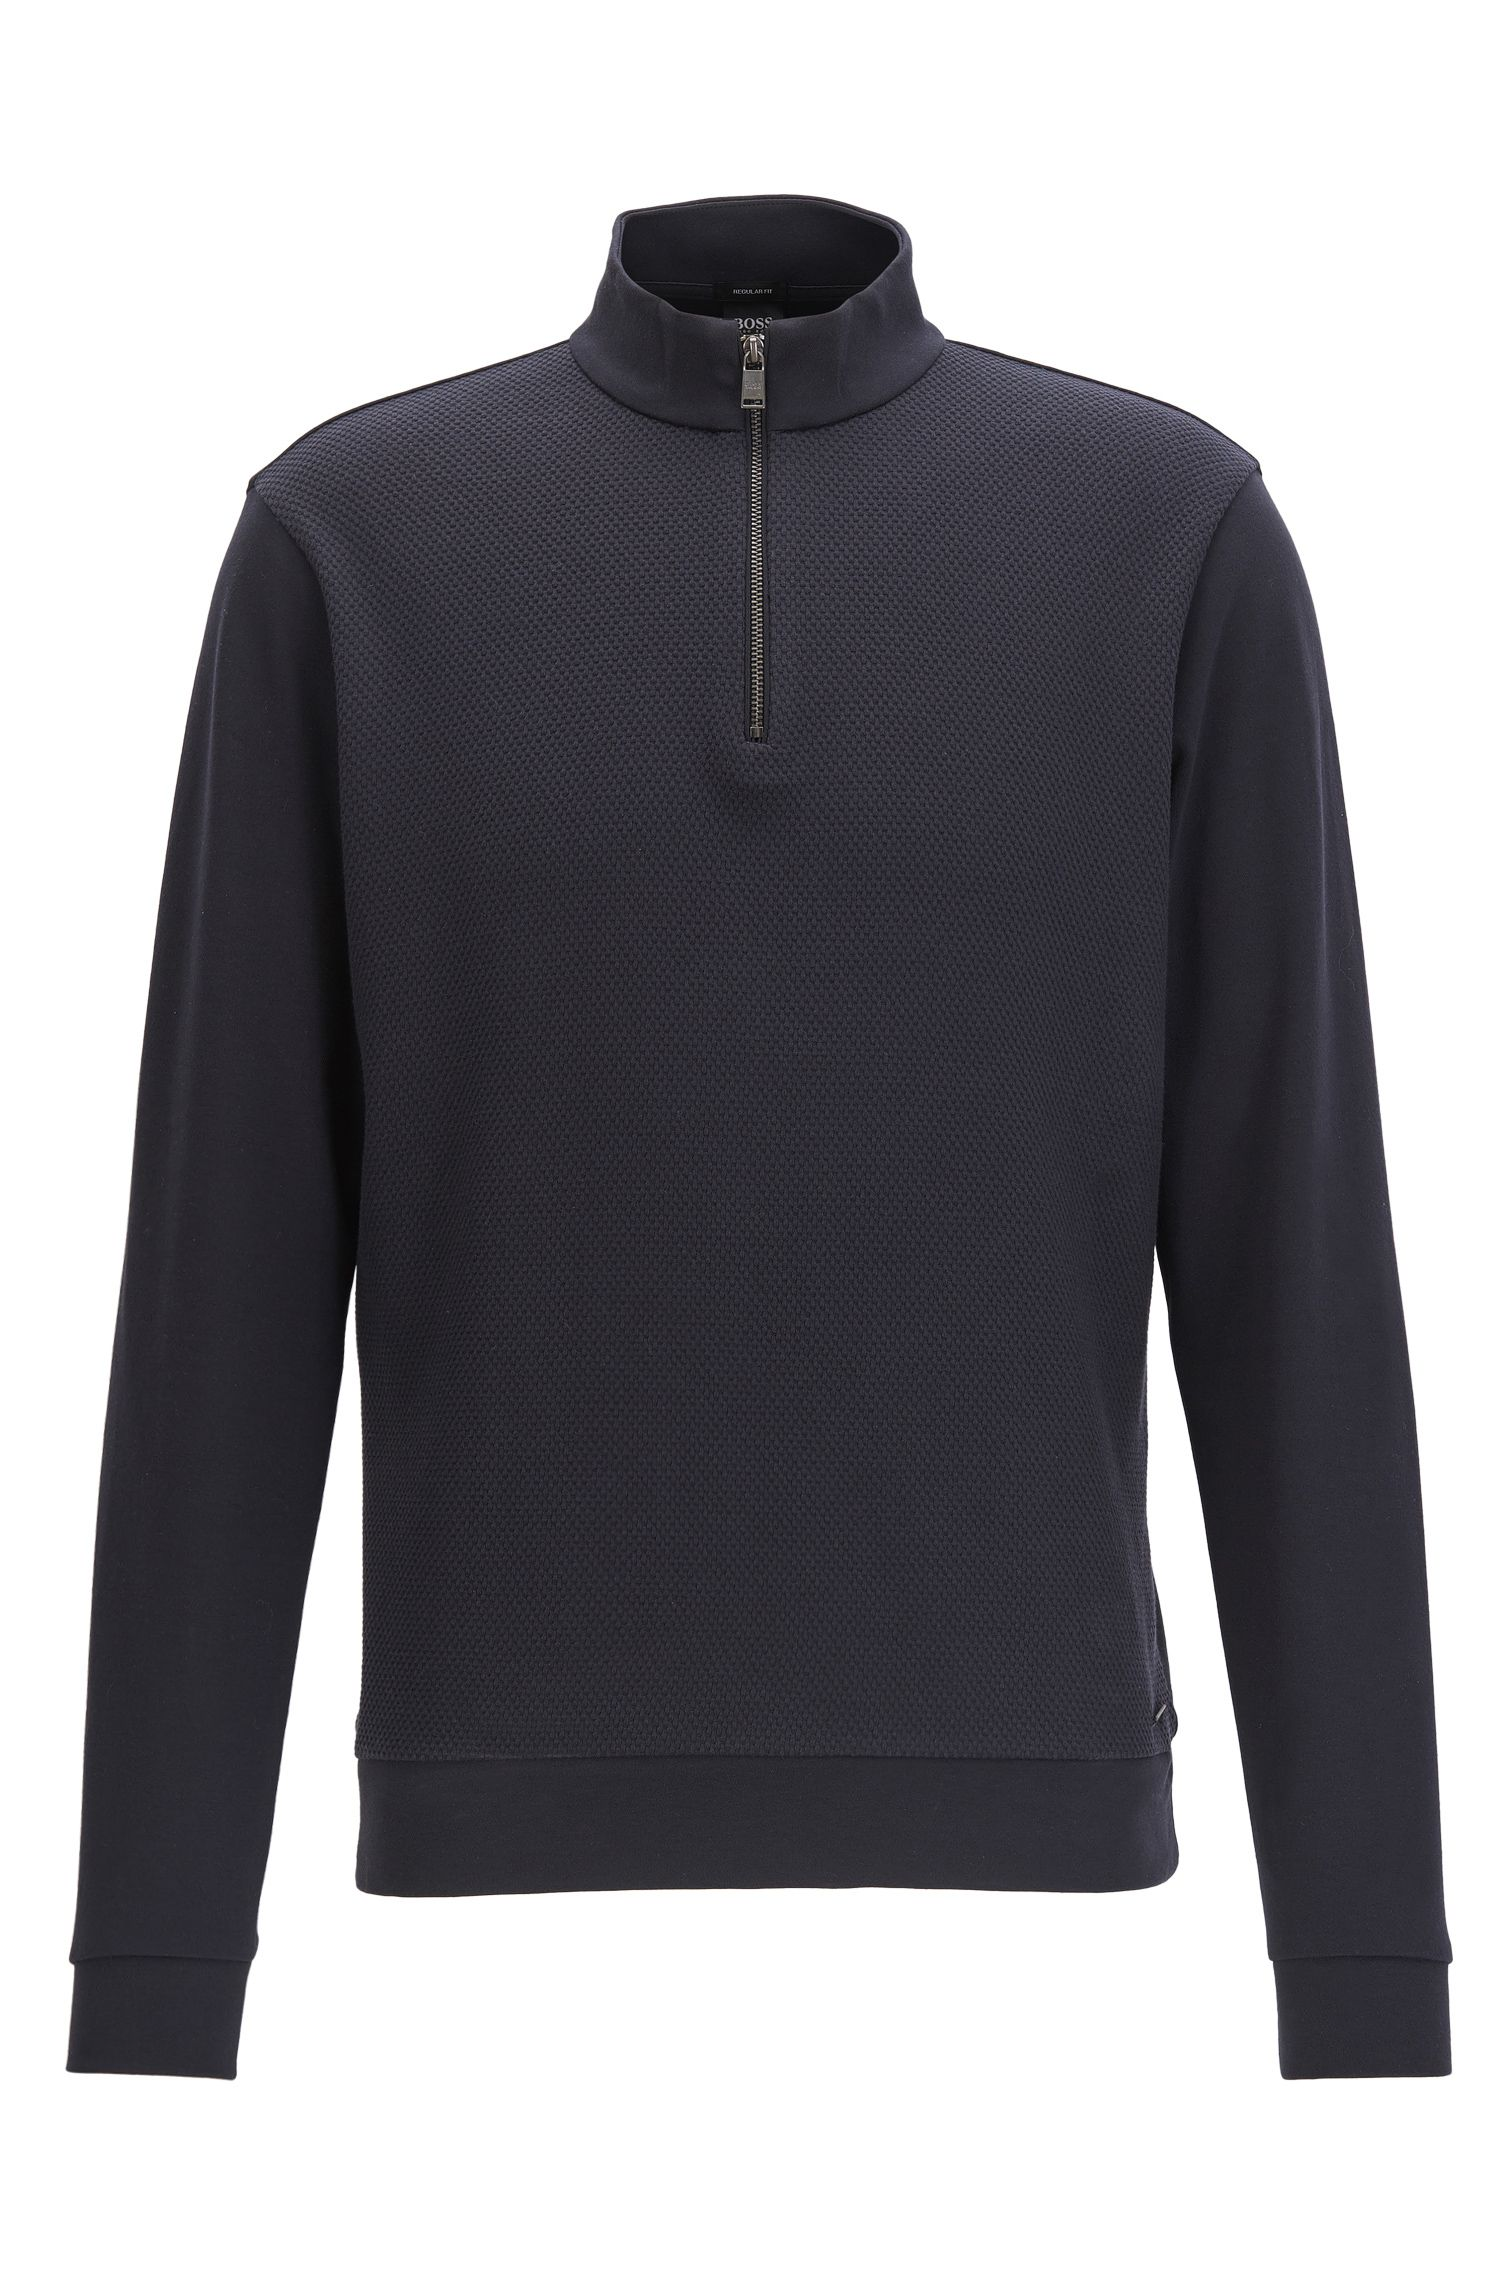 Cotton Birdseye Half-Zip Sweatshirt | Sidney